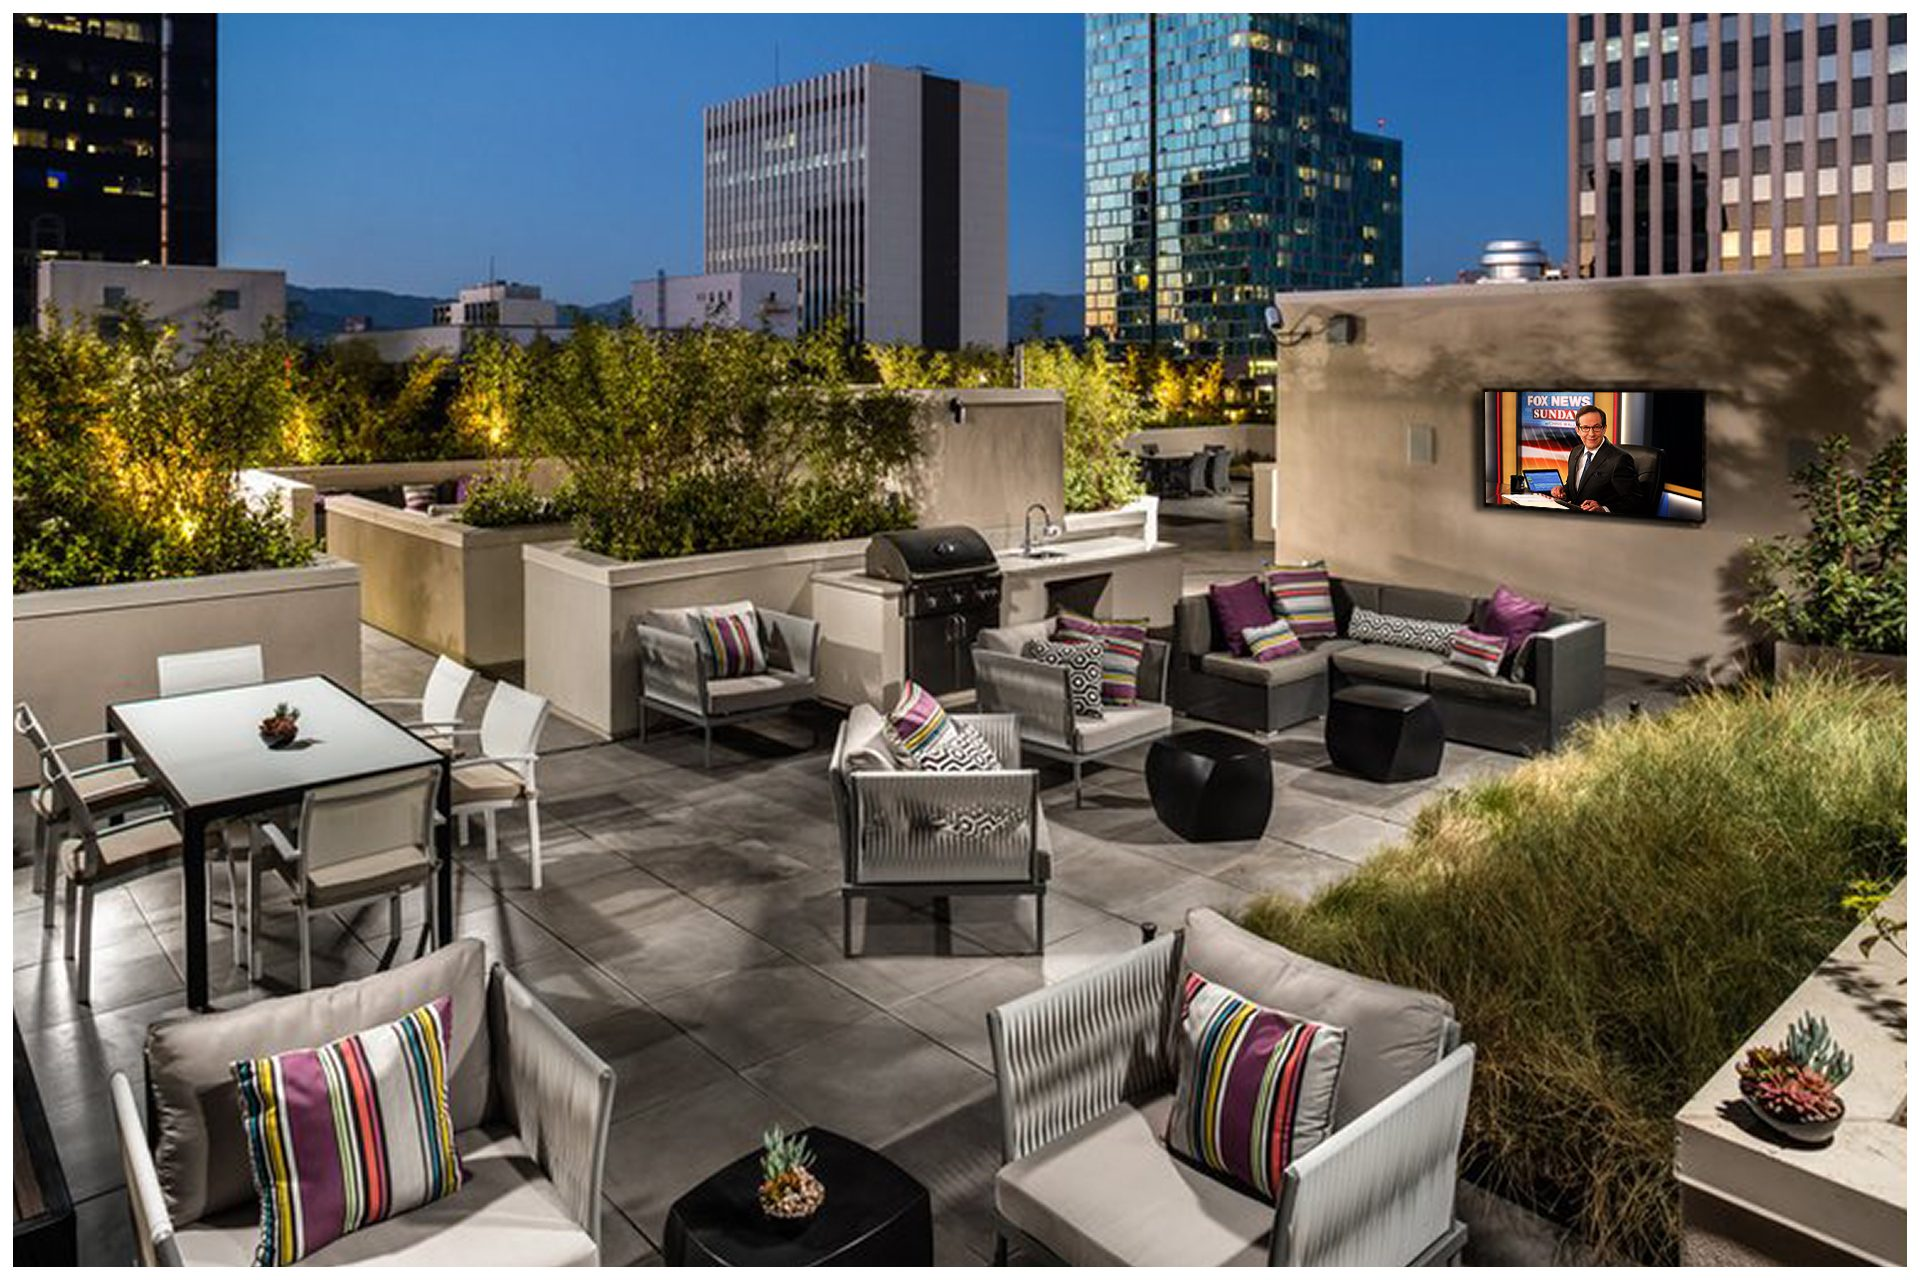 ROOFTOP/SKY DECK PROVISIONS Roof-top Music and TV & WiFi; Music & TV provisions controlled  from leasing office.